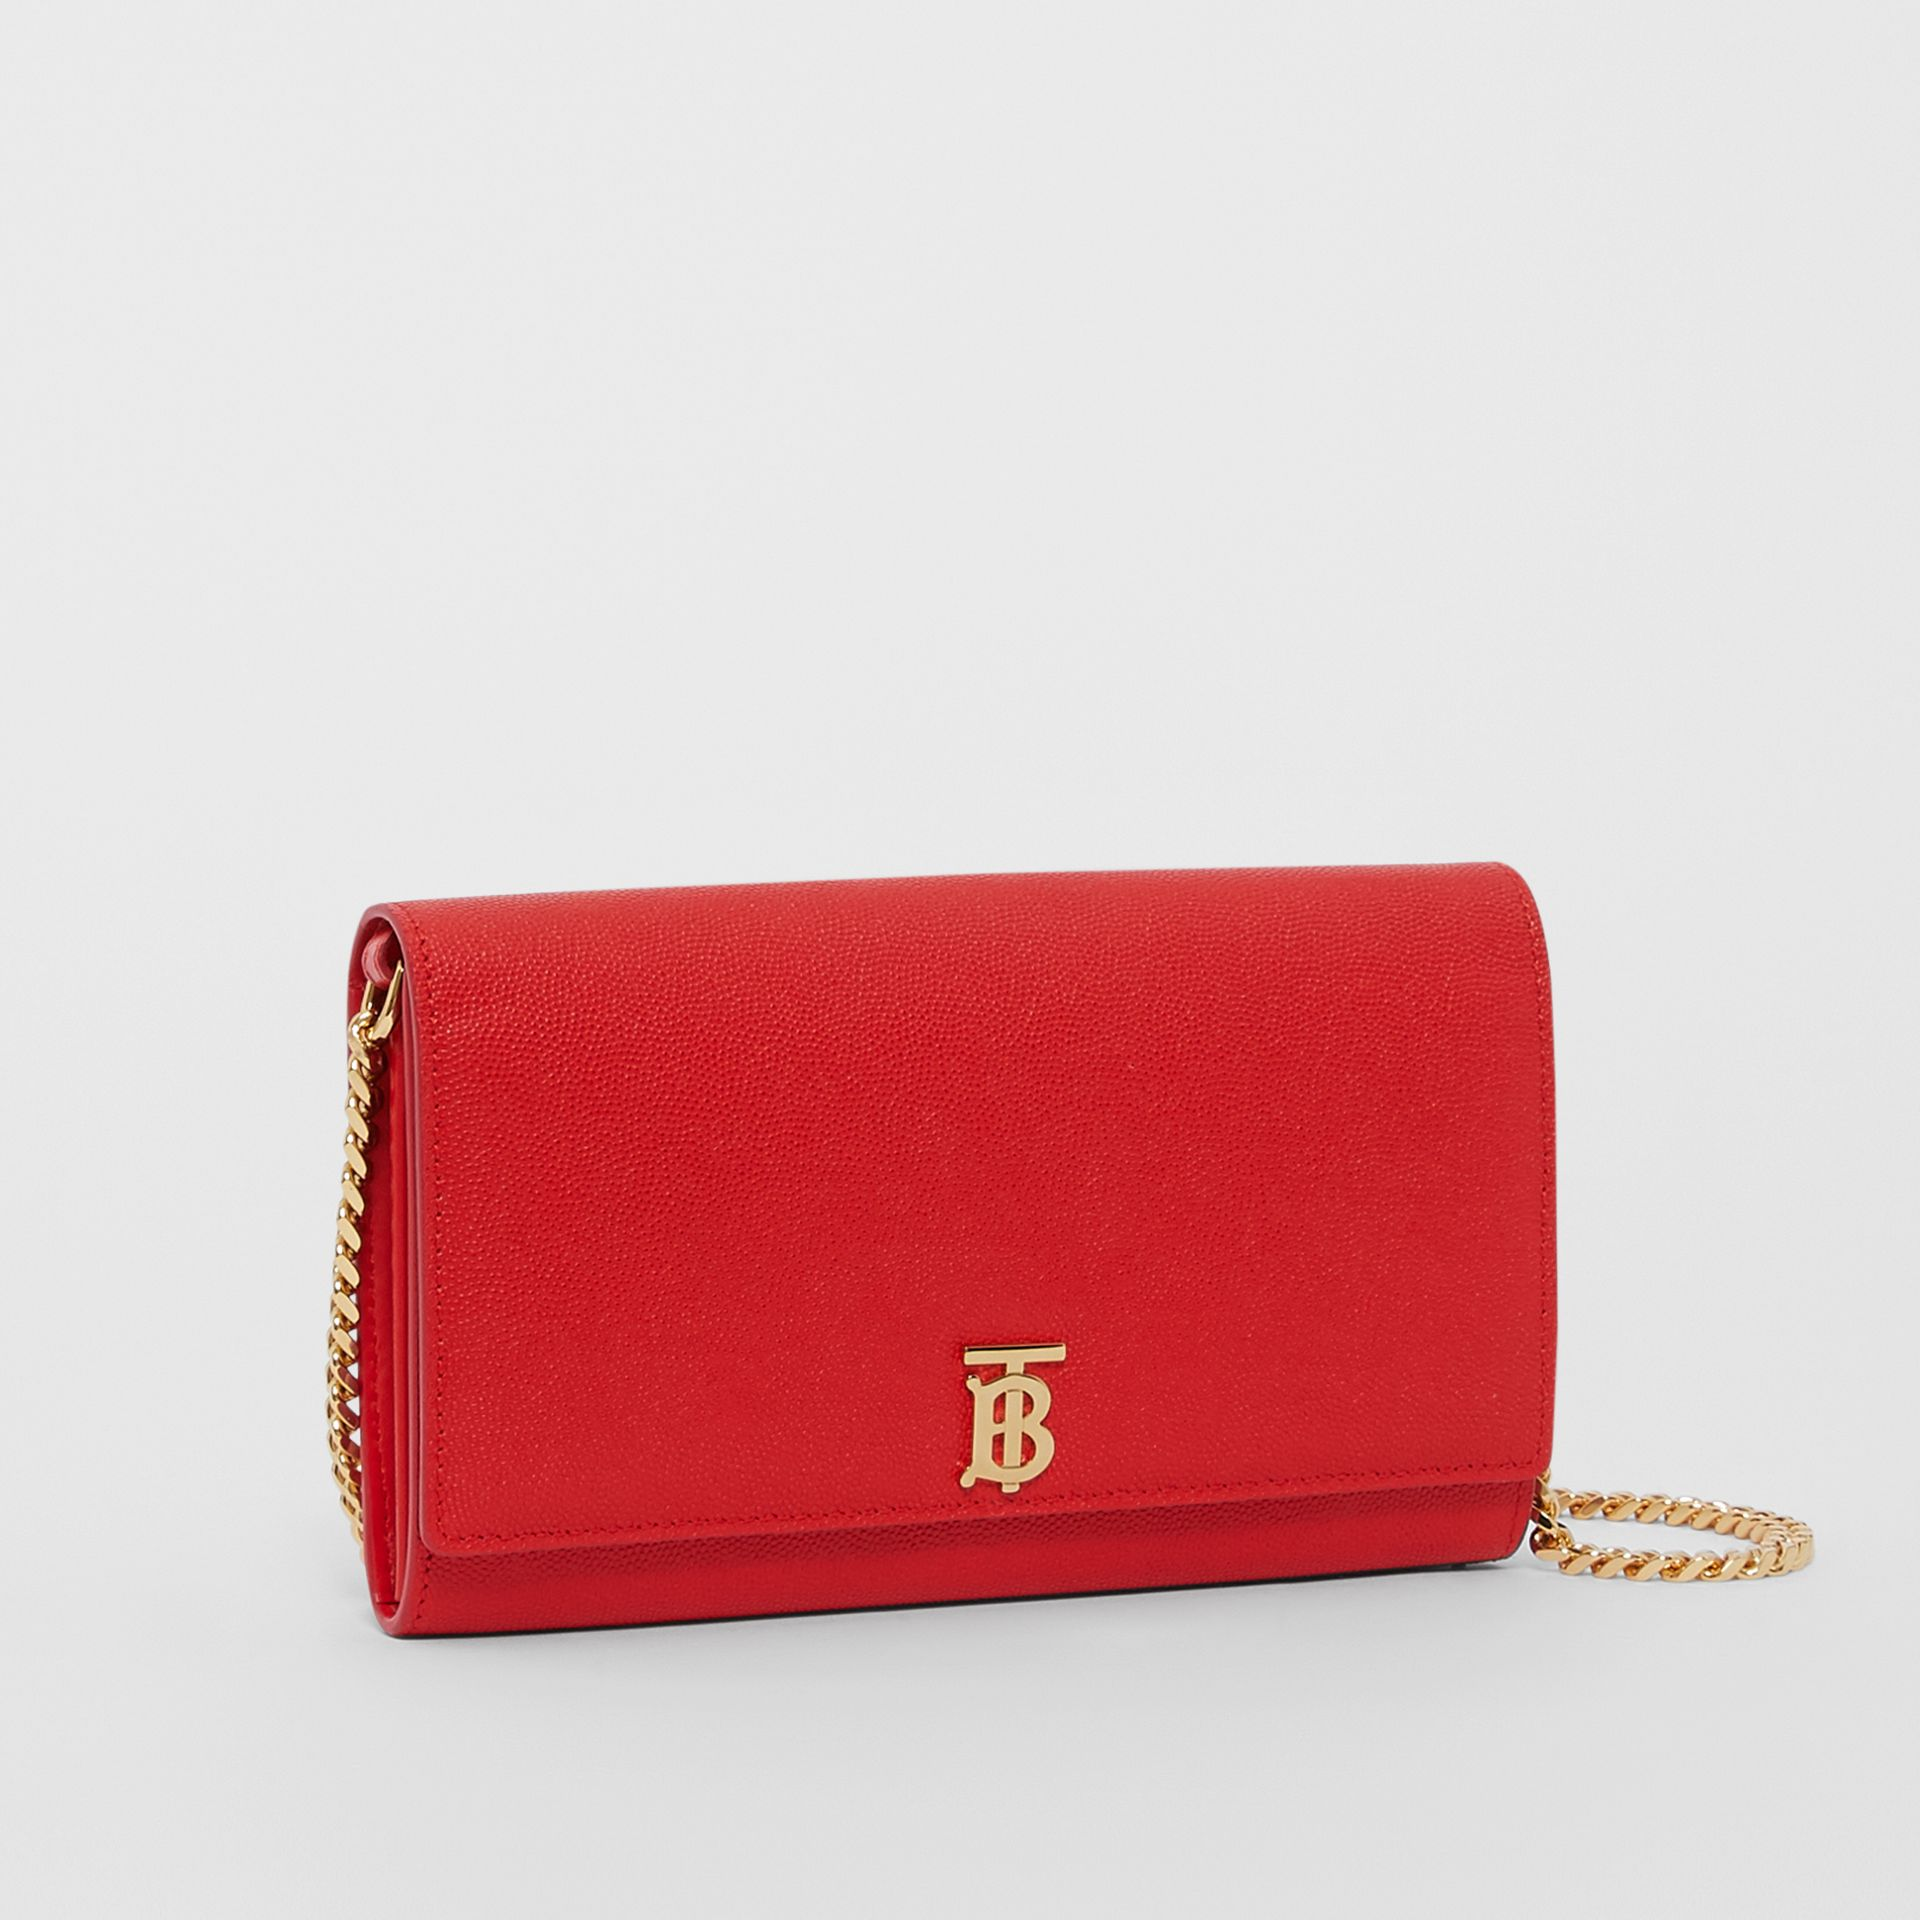 Monogram Motif Leather Wallet with Detachable Strap in Bright Red - Women | Burberry Hong Kong S.A.R - gallery image 4